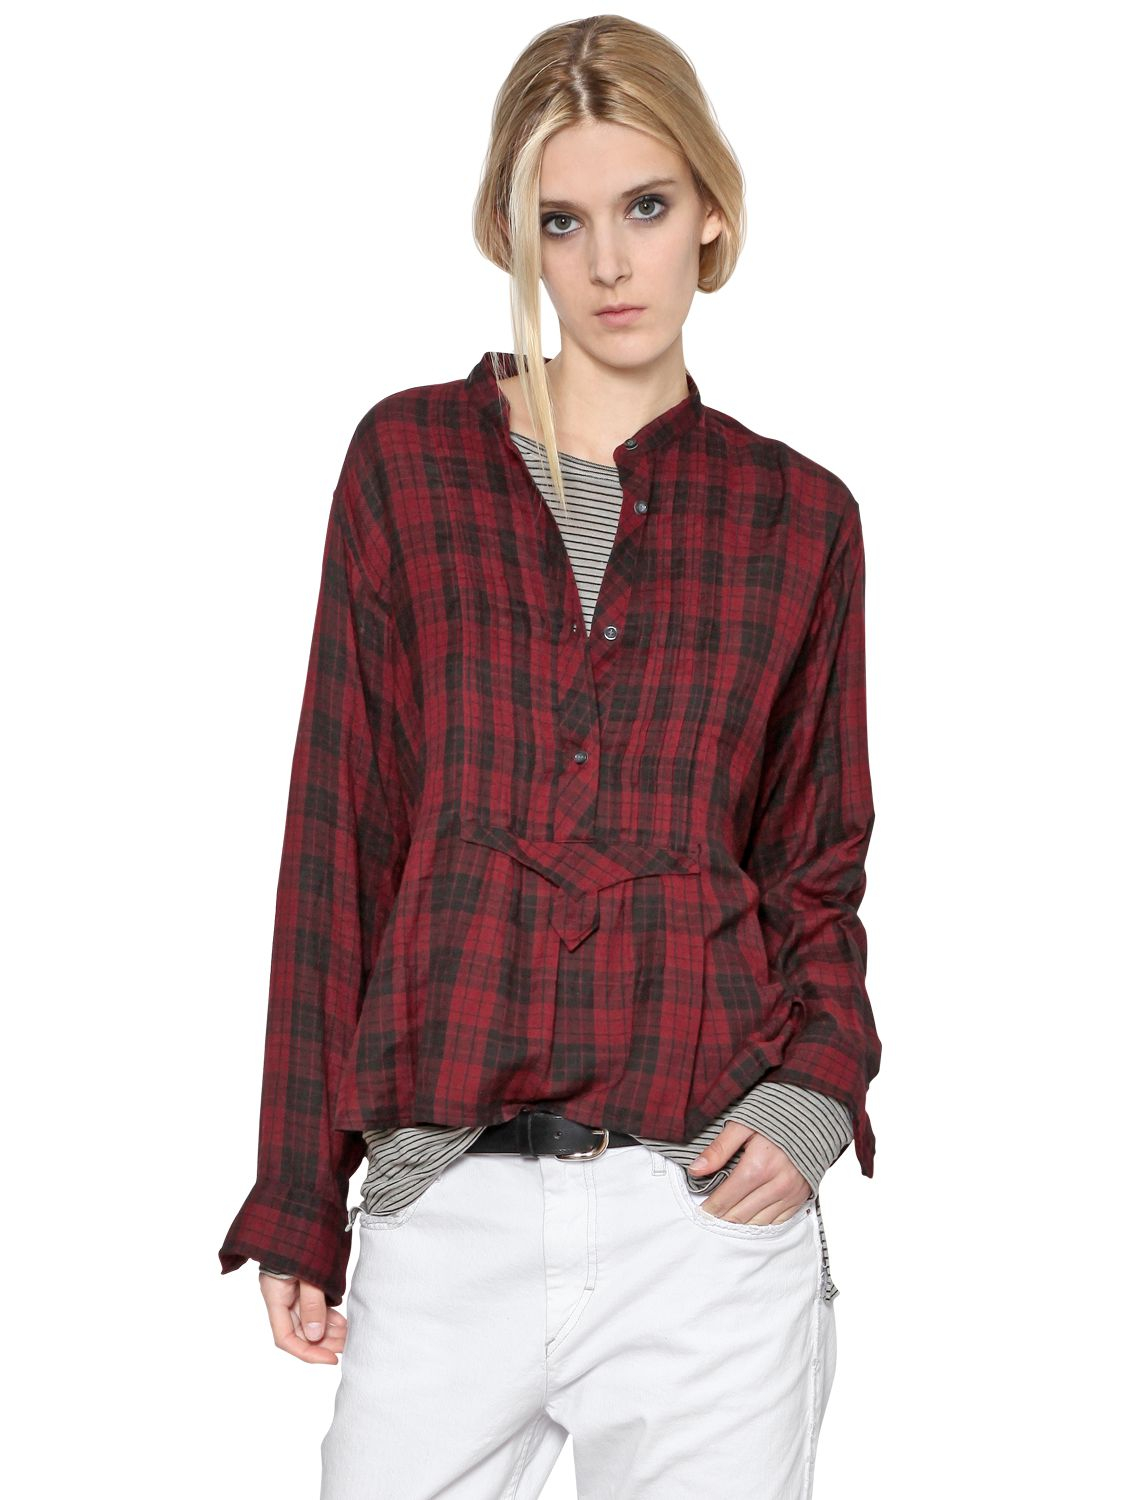 Lyst - Étoile Isabel Marant Plaid Cotton Flannel Shirt in Red